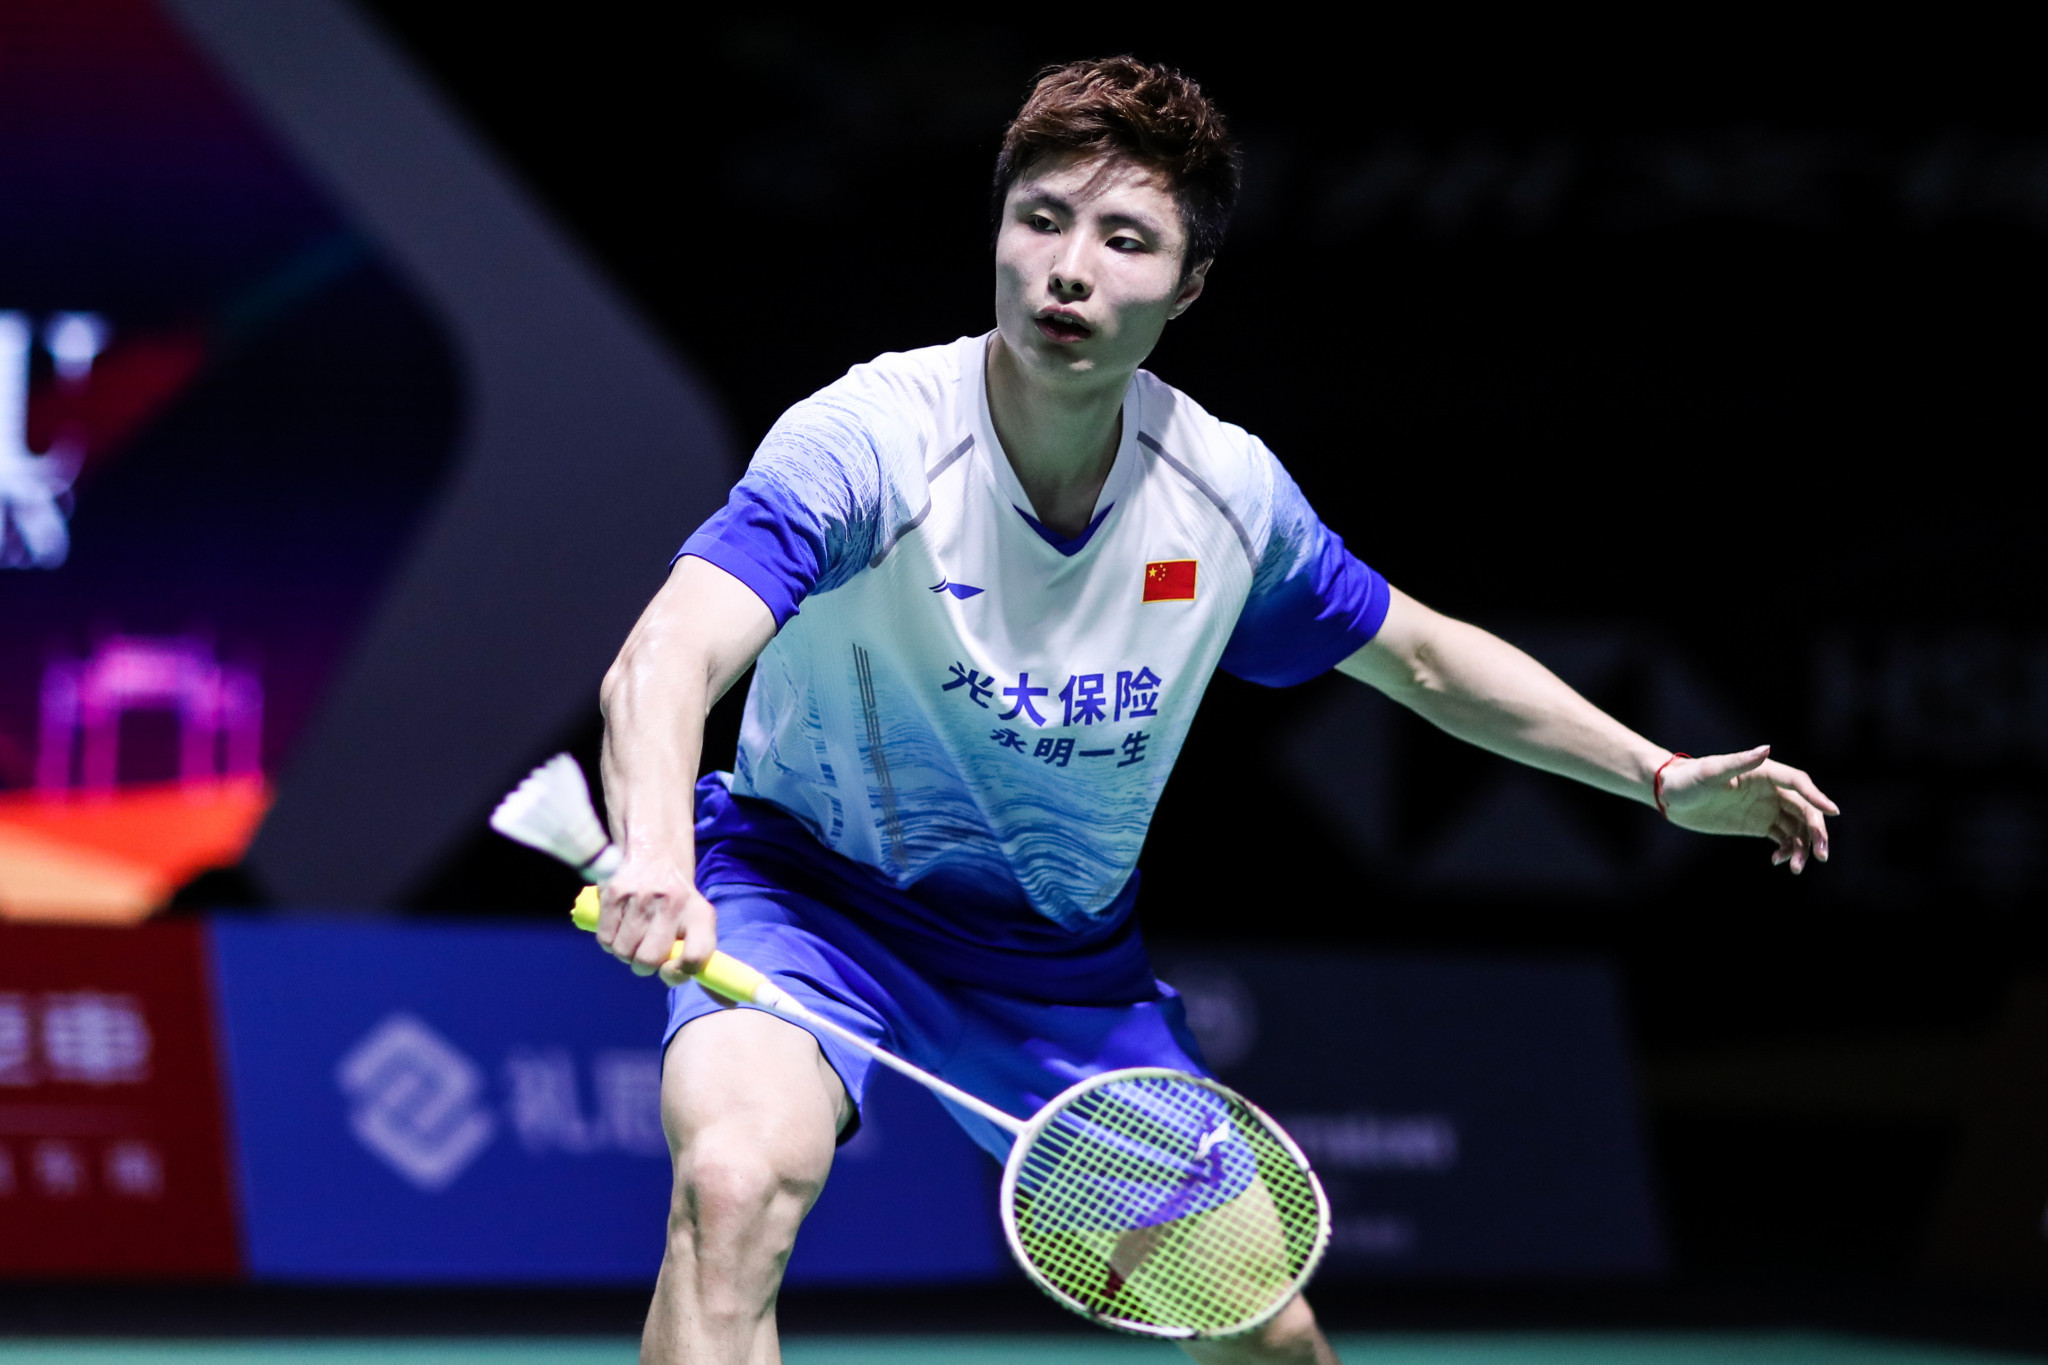 Shi Yuqi won his first round match with a toe blister ©Getty Images